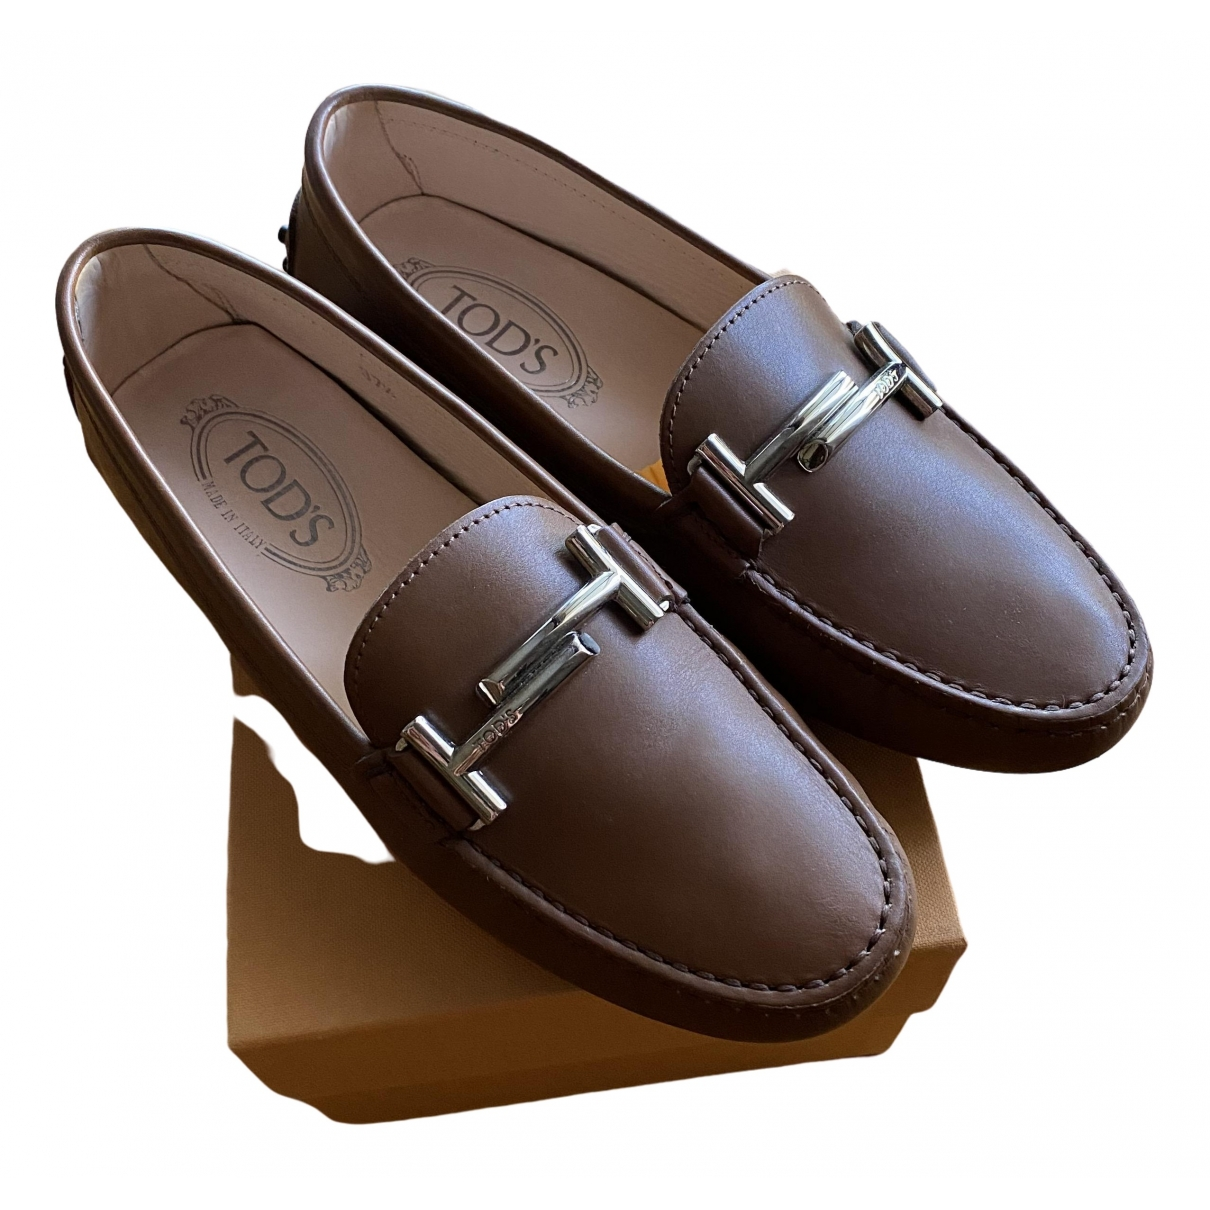 Tod's Gommino Camel Leather Flats for Women 37.5 IT